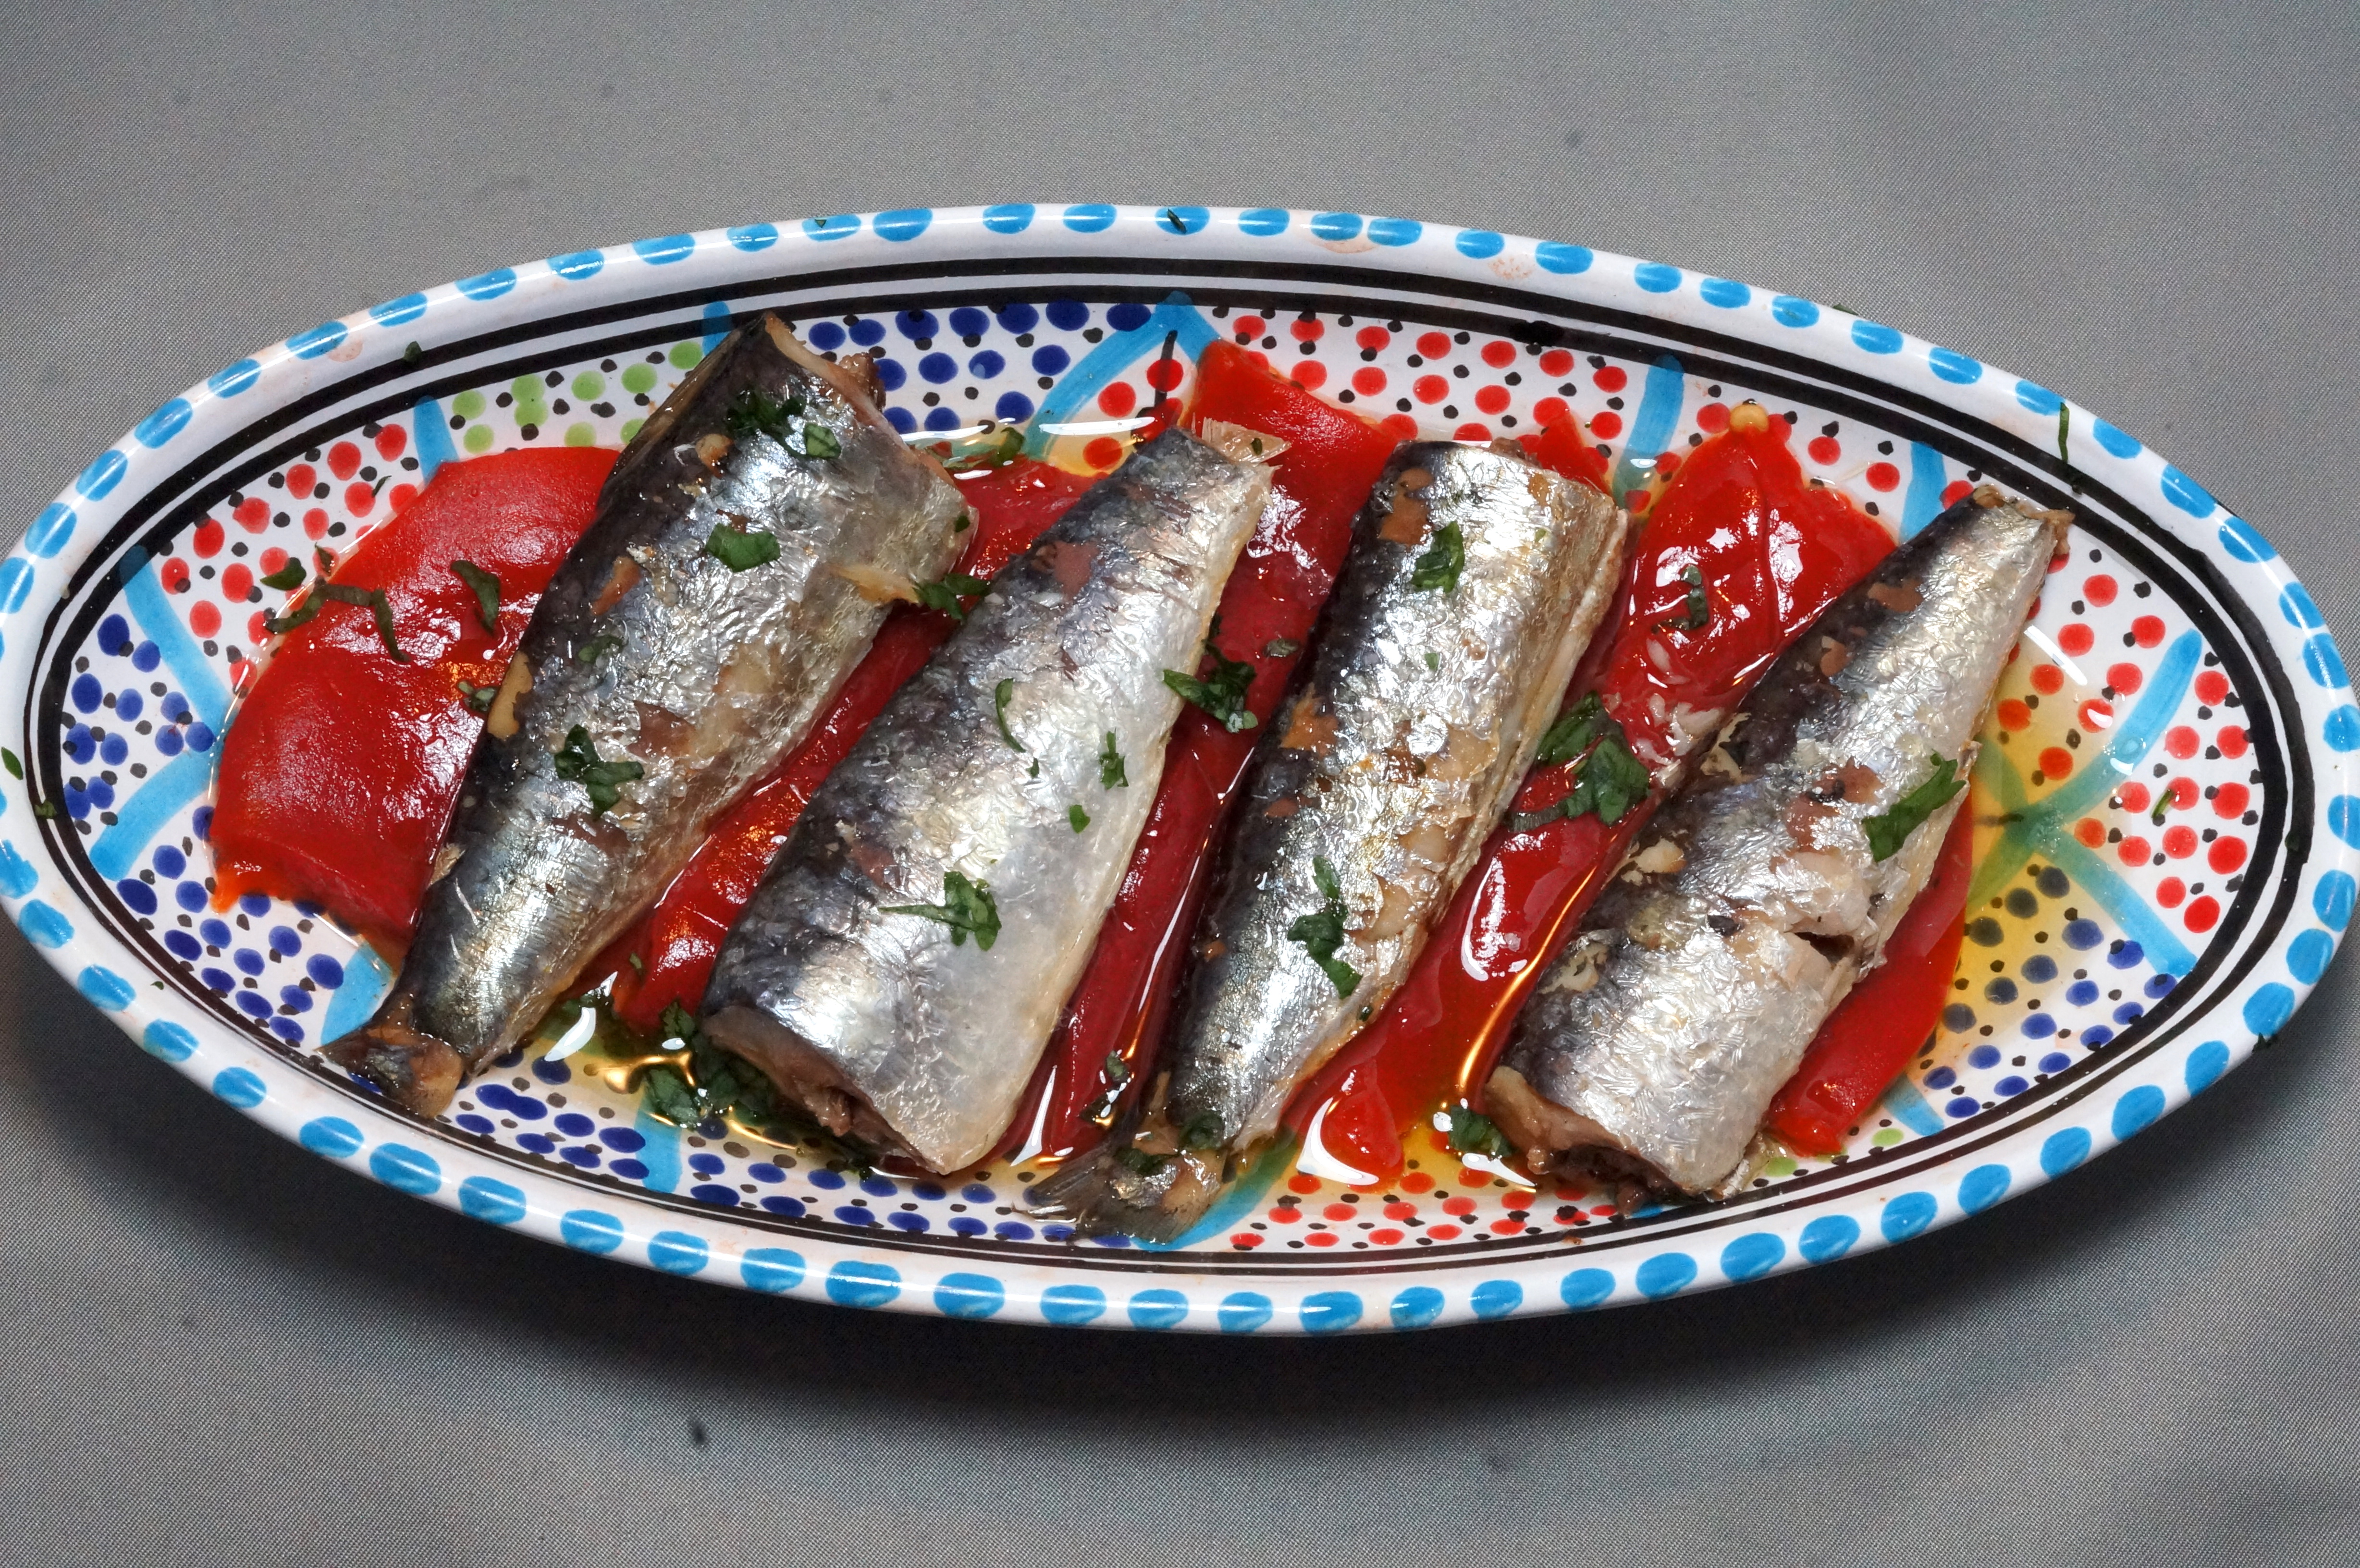 Are You Kidding – Canned Sardines?